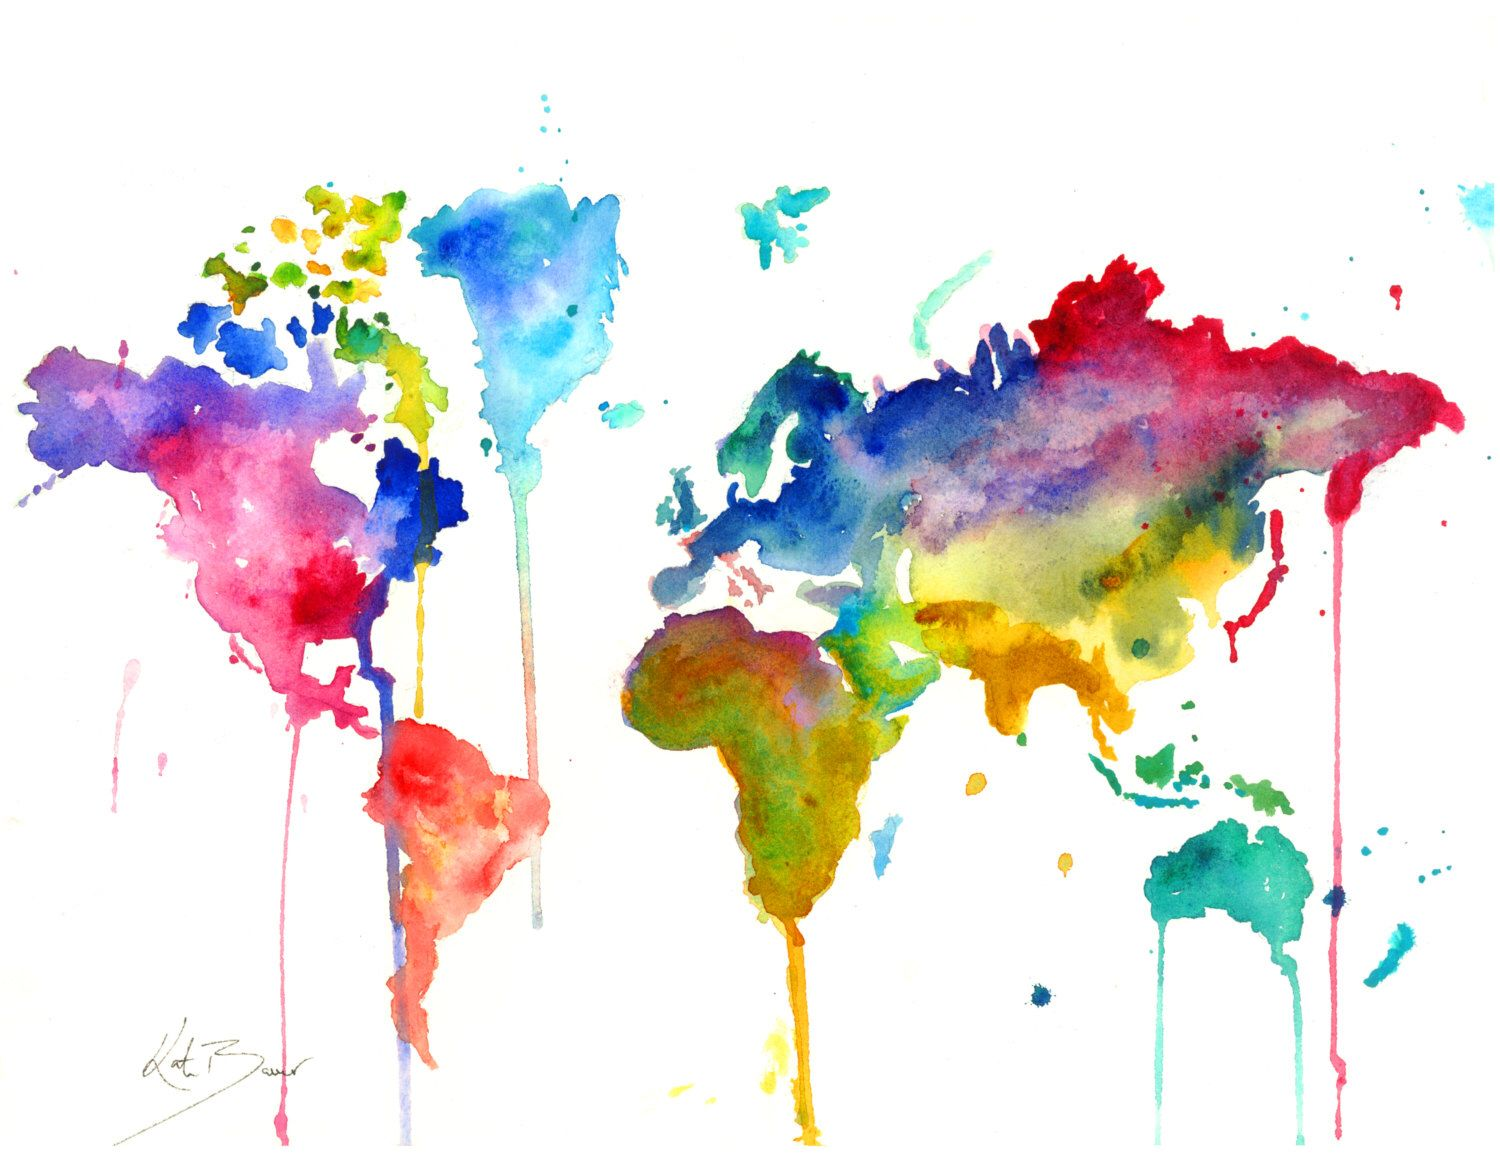 World map print of original watercolor illustration pinterest world map print of original watercolor illustration by milkandhoneybread on etsy httpsetsylisting150211601world map print of original gumiabroncs Image collections